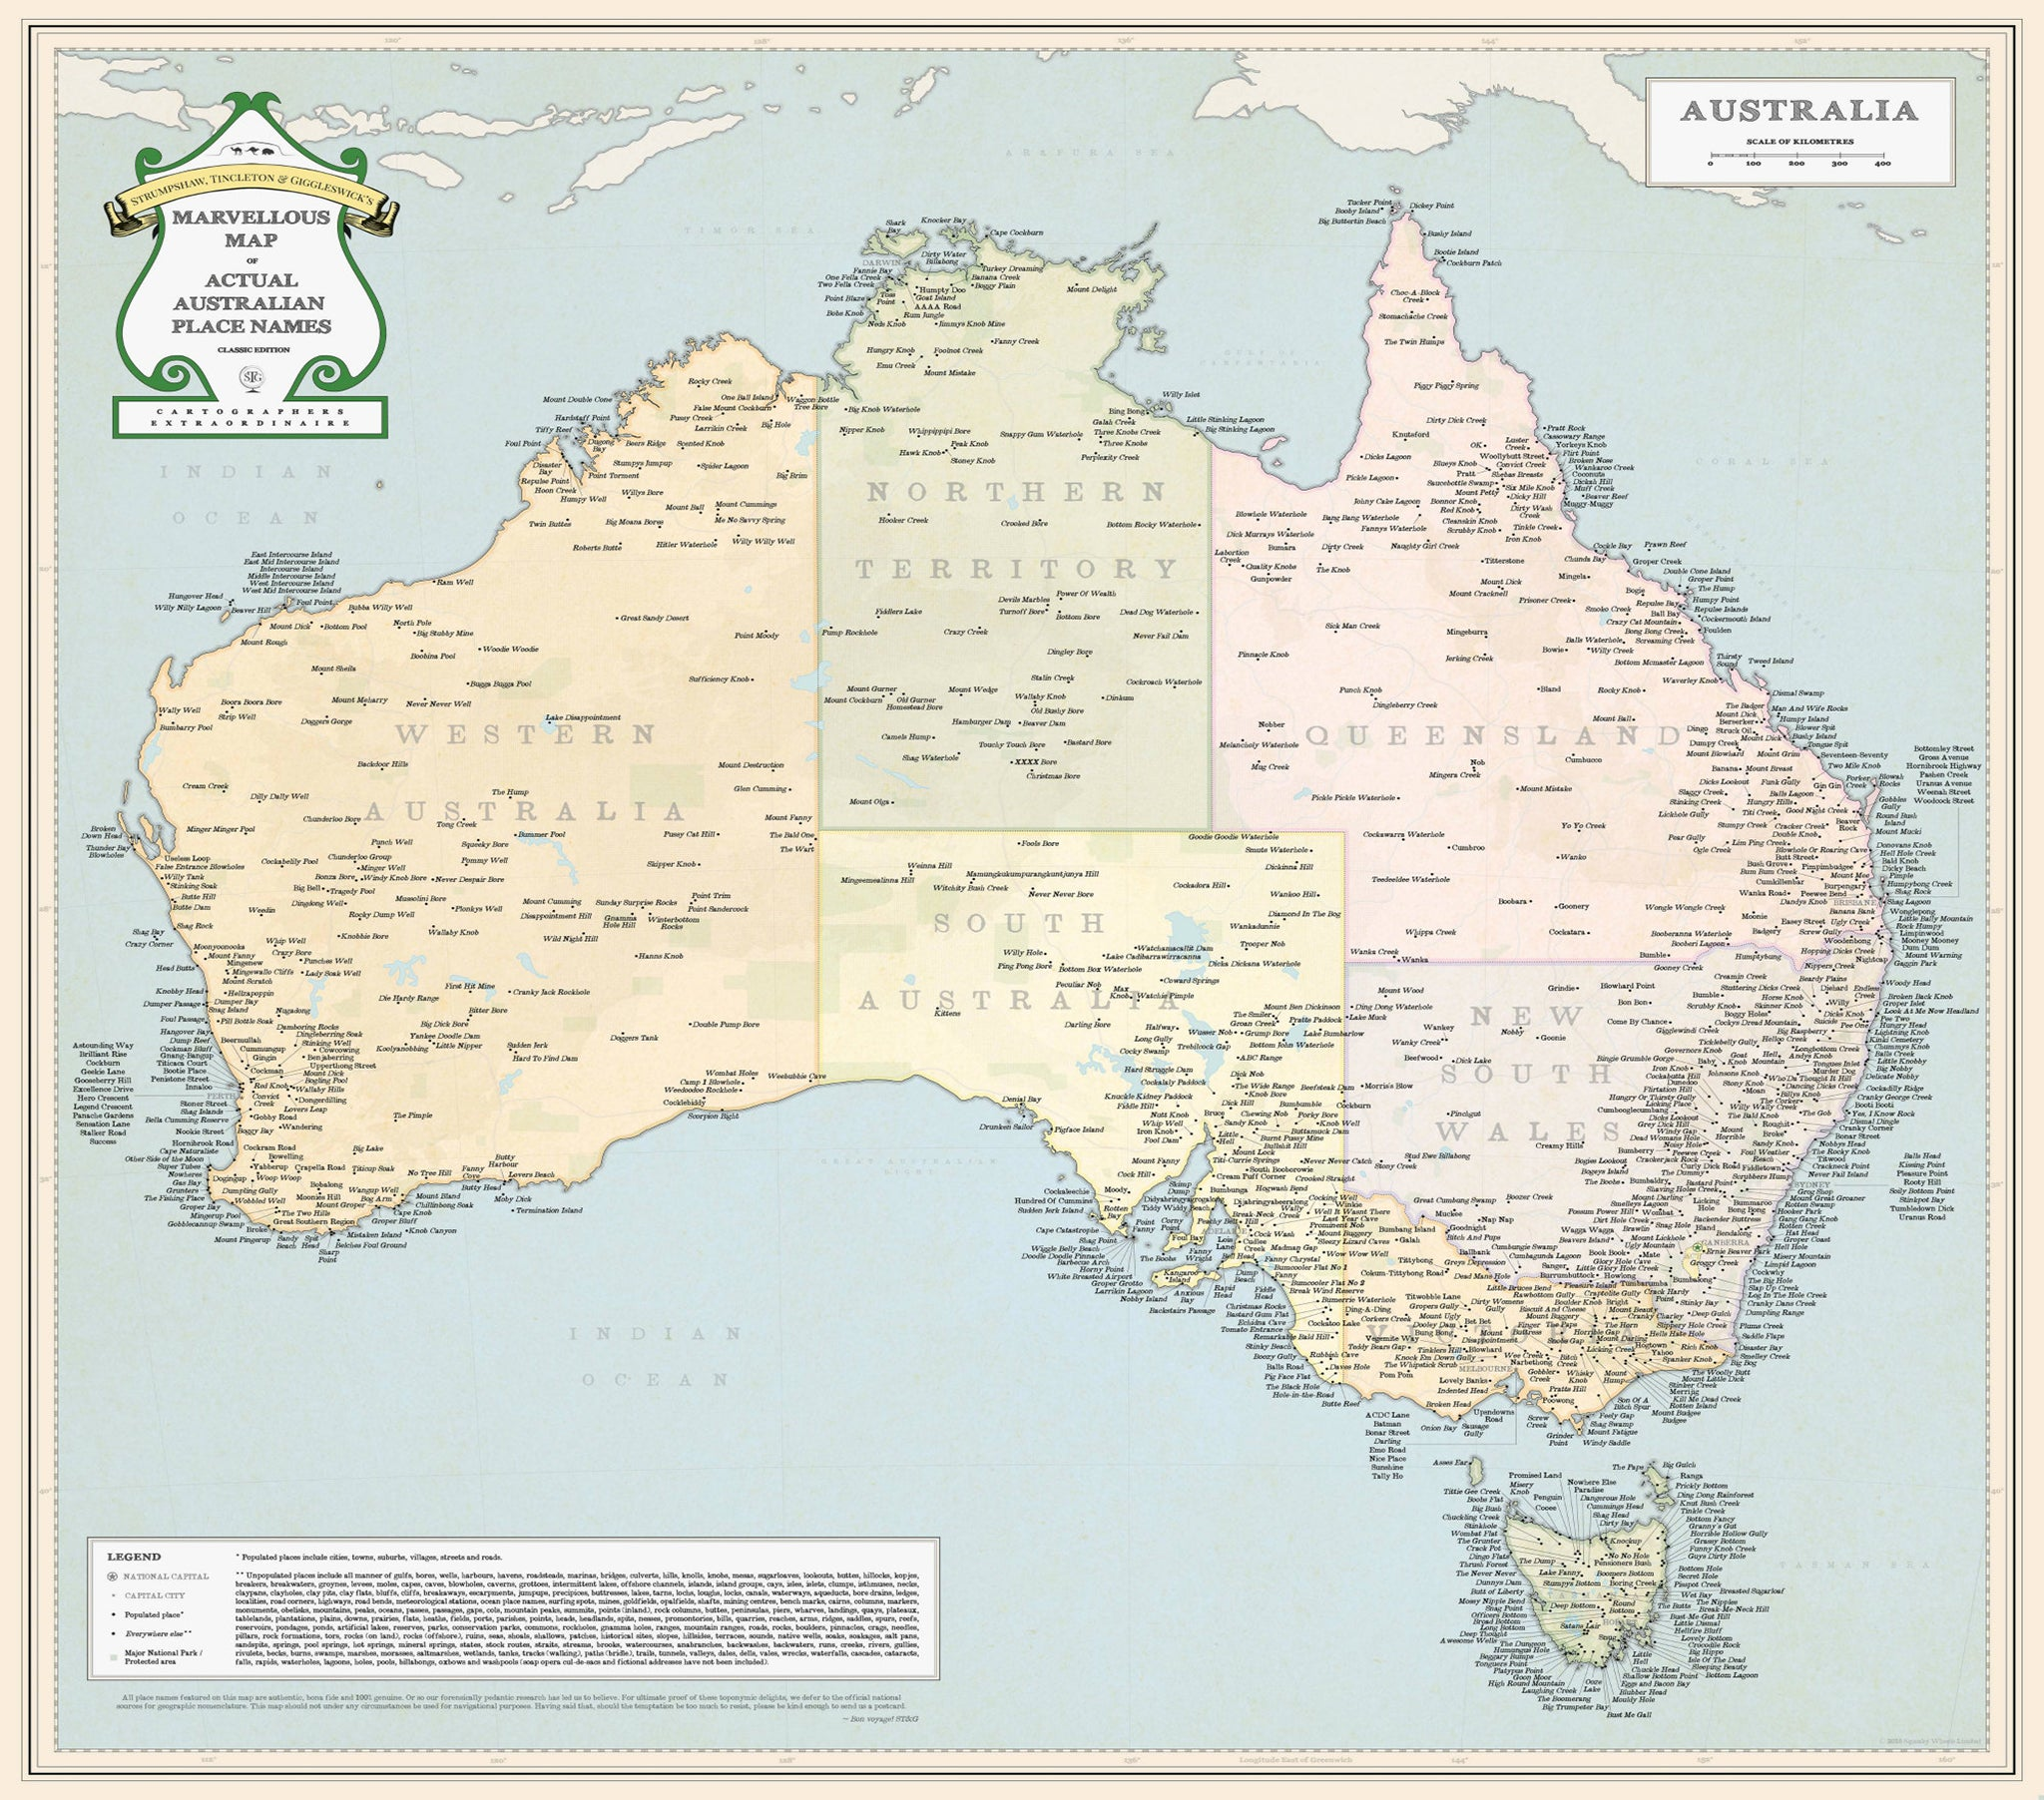 Buy marvellous map of actual australian place names mapworld marvellous map of actual australian place names 660 x 660mm paper gumiabroncs Gallery